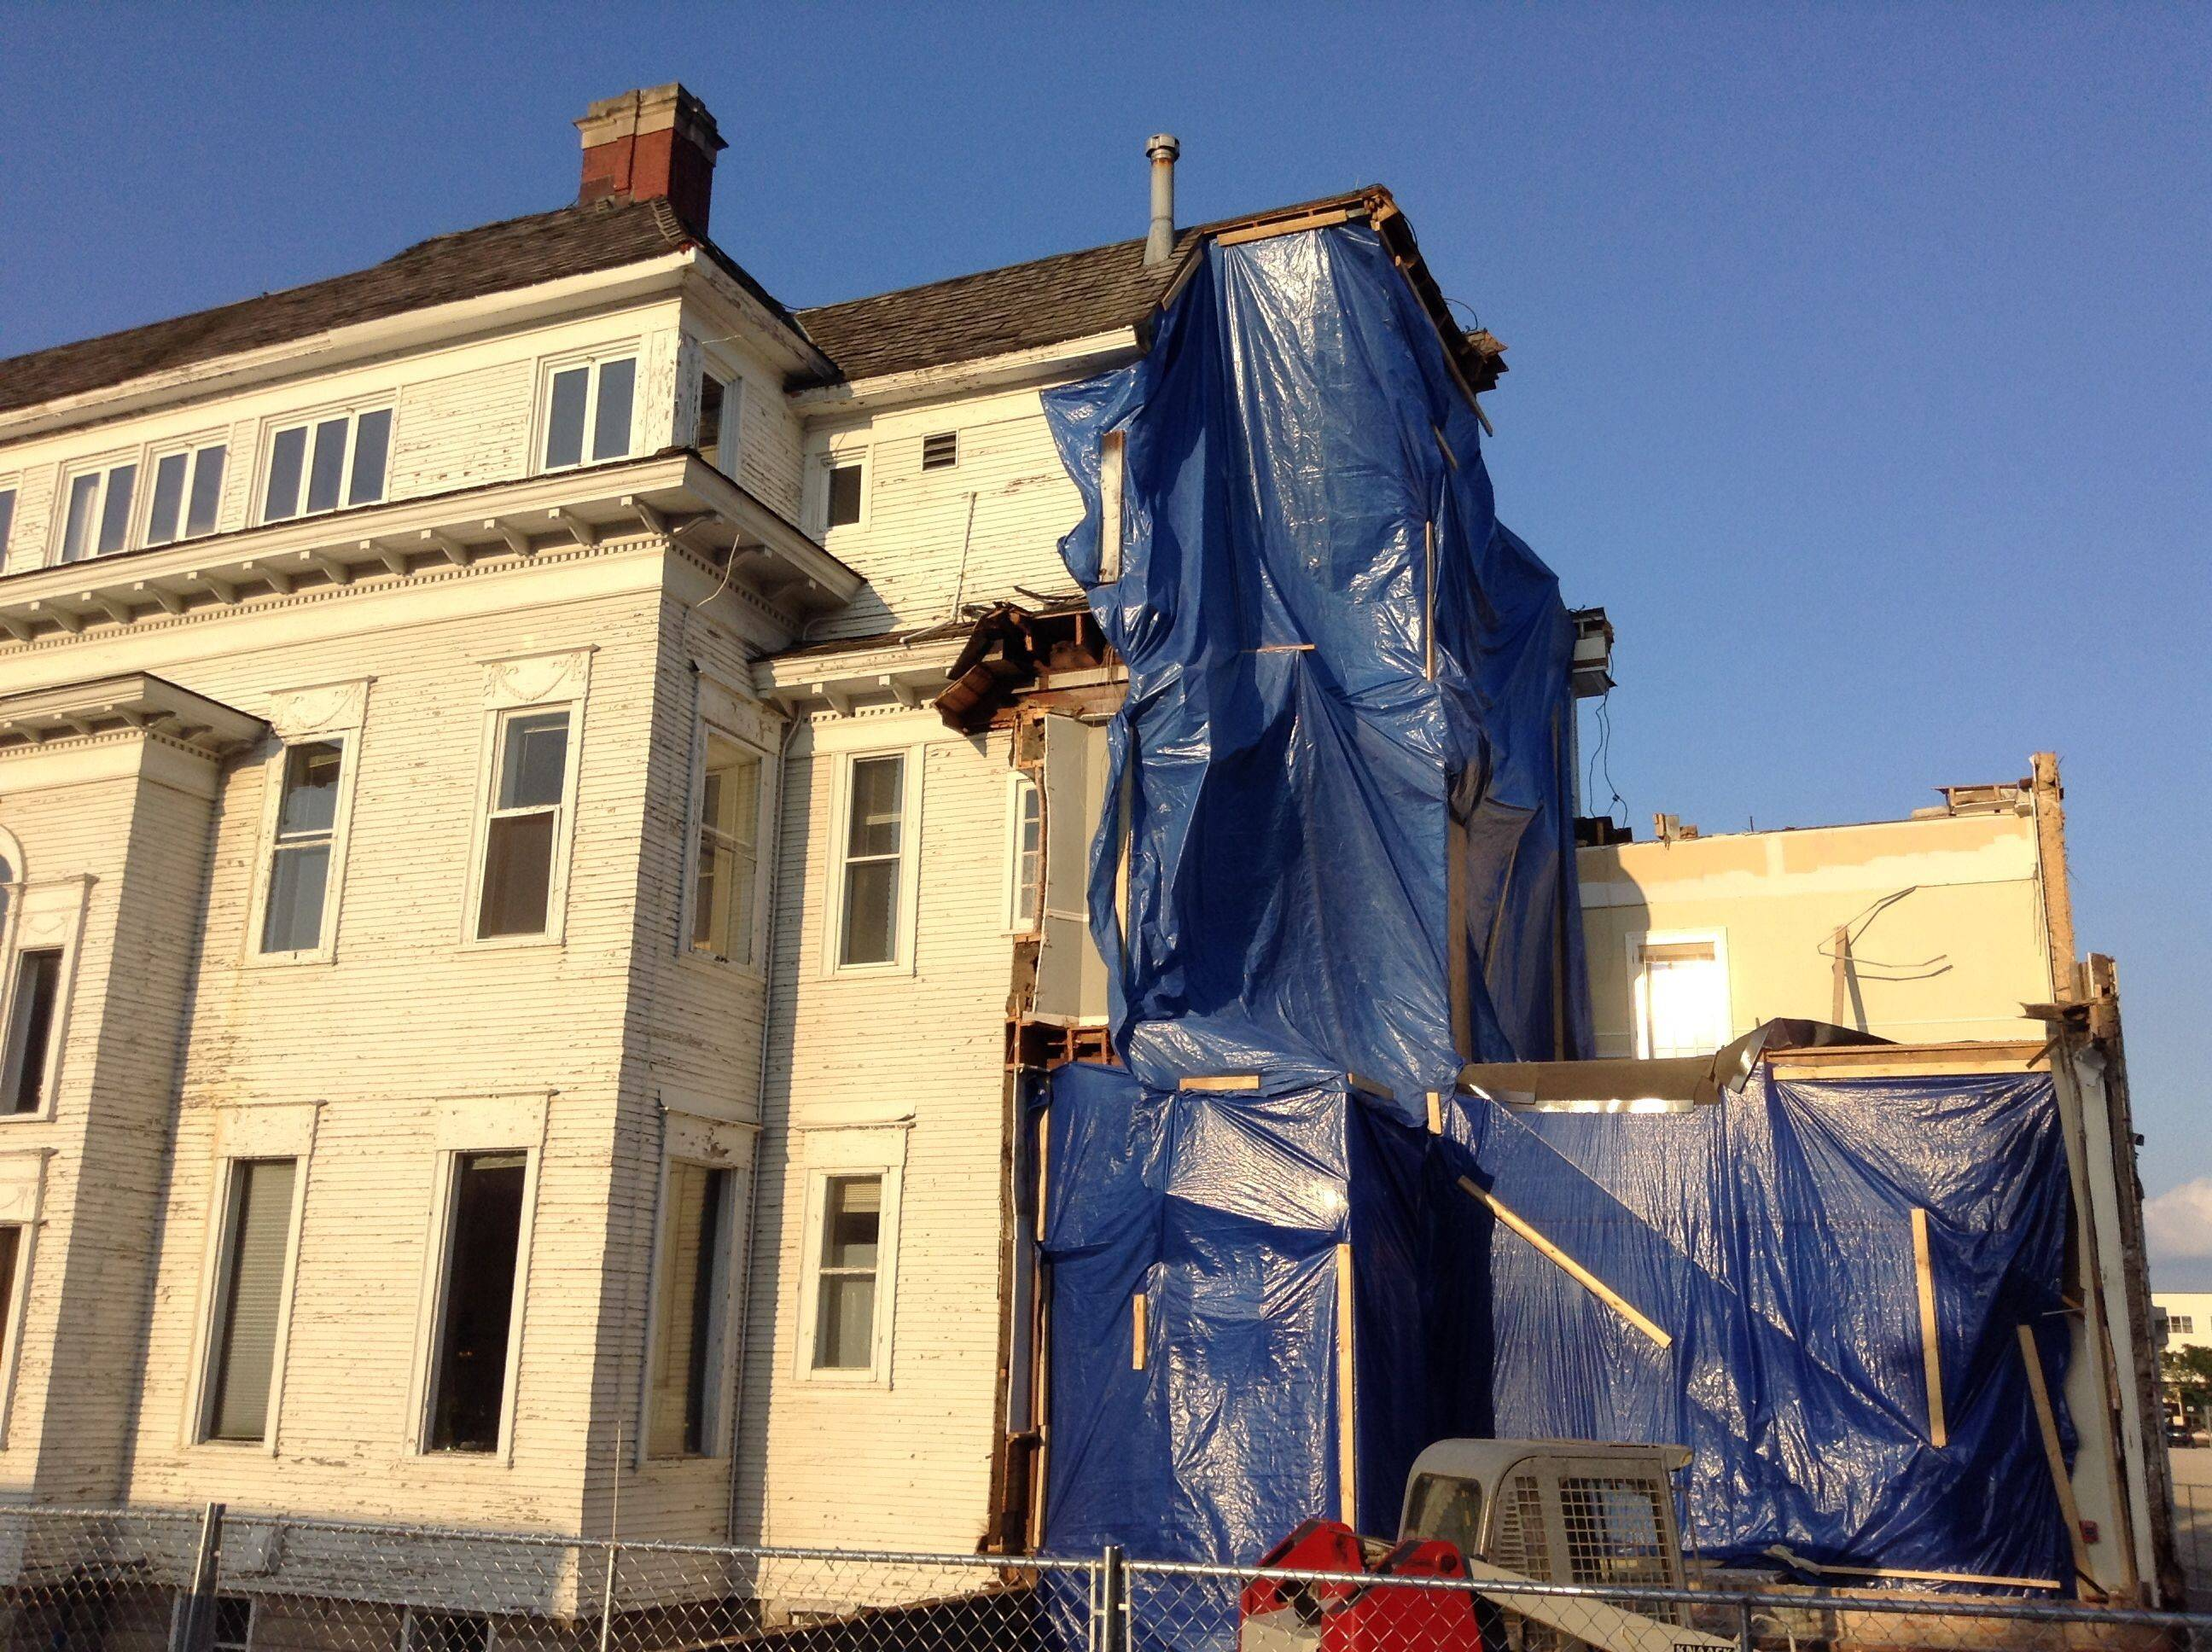 The southwest corner of the Barrington White House, seen here Monday, has undergone great change during the first month of the project to renovate the 116-year-old building.